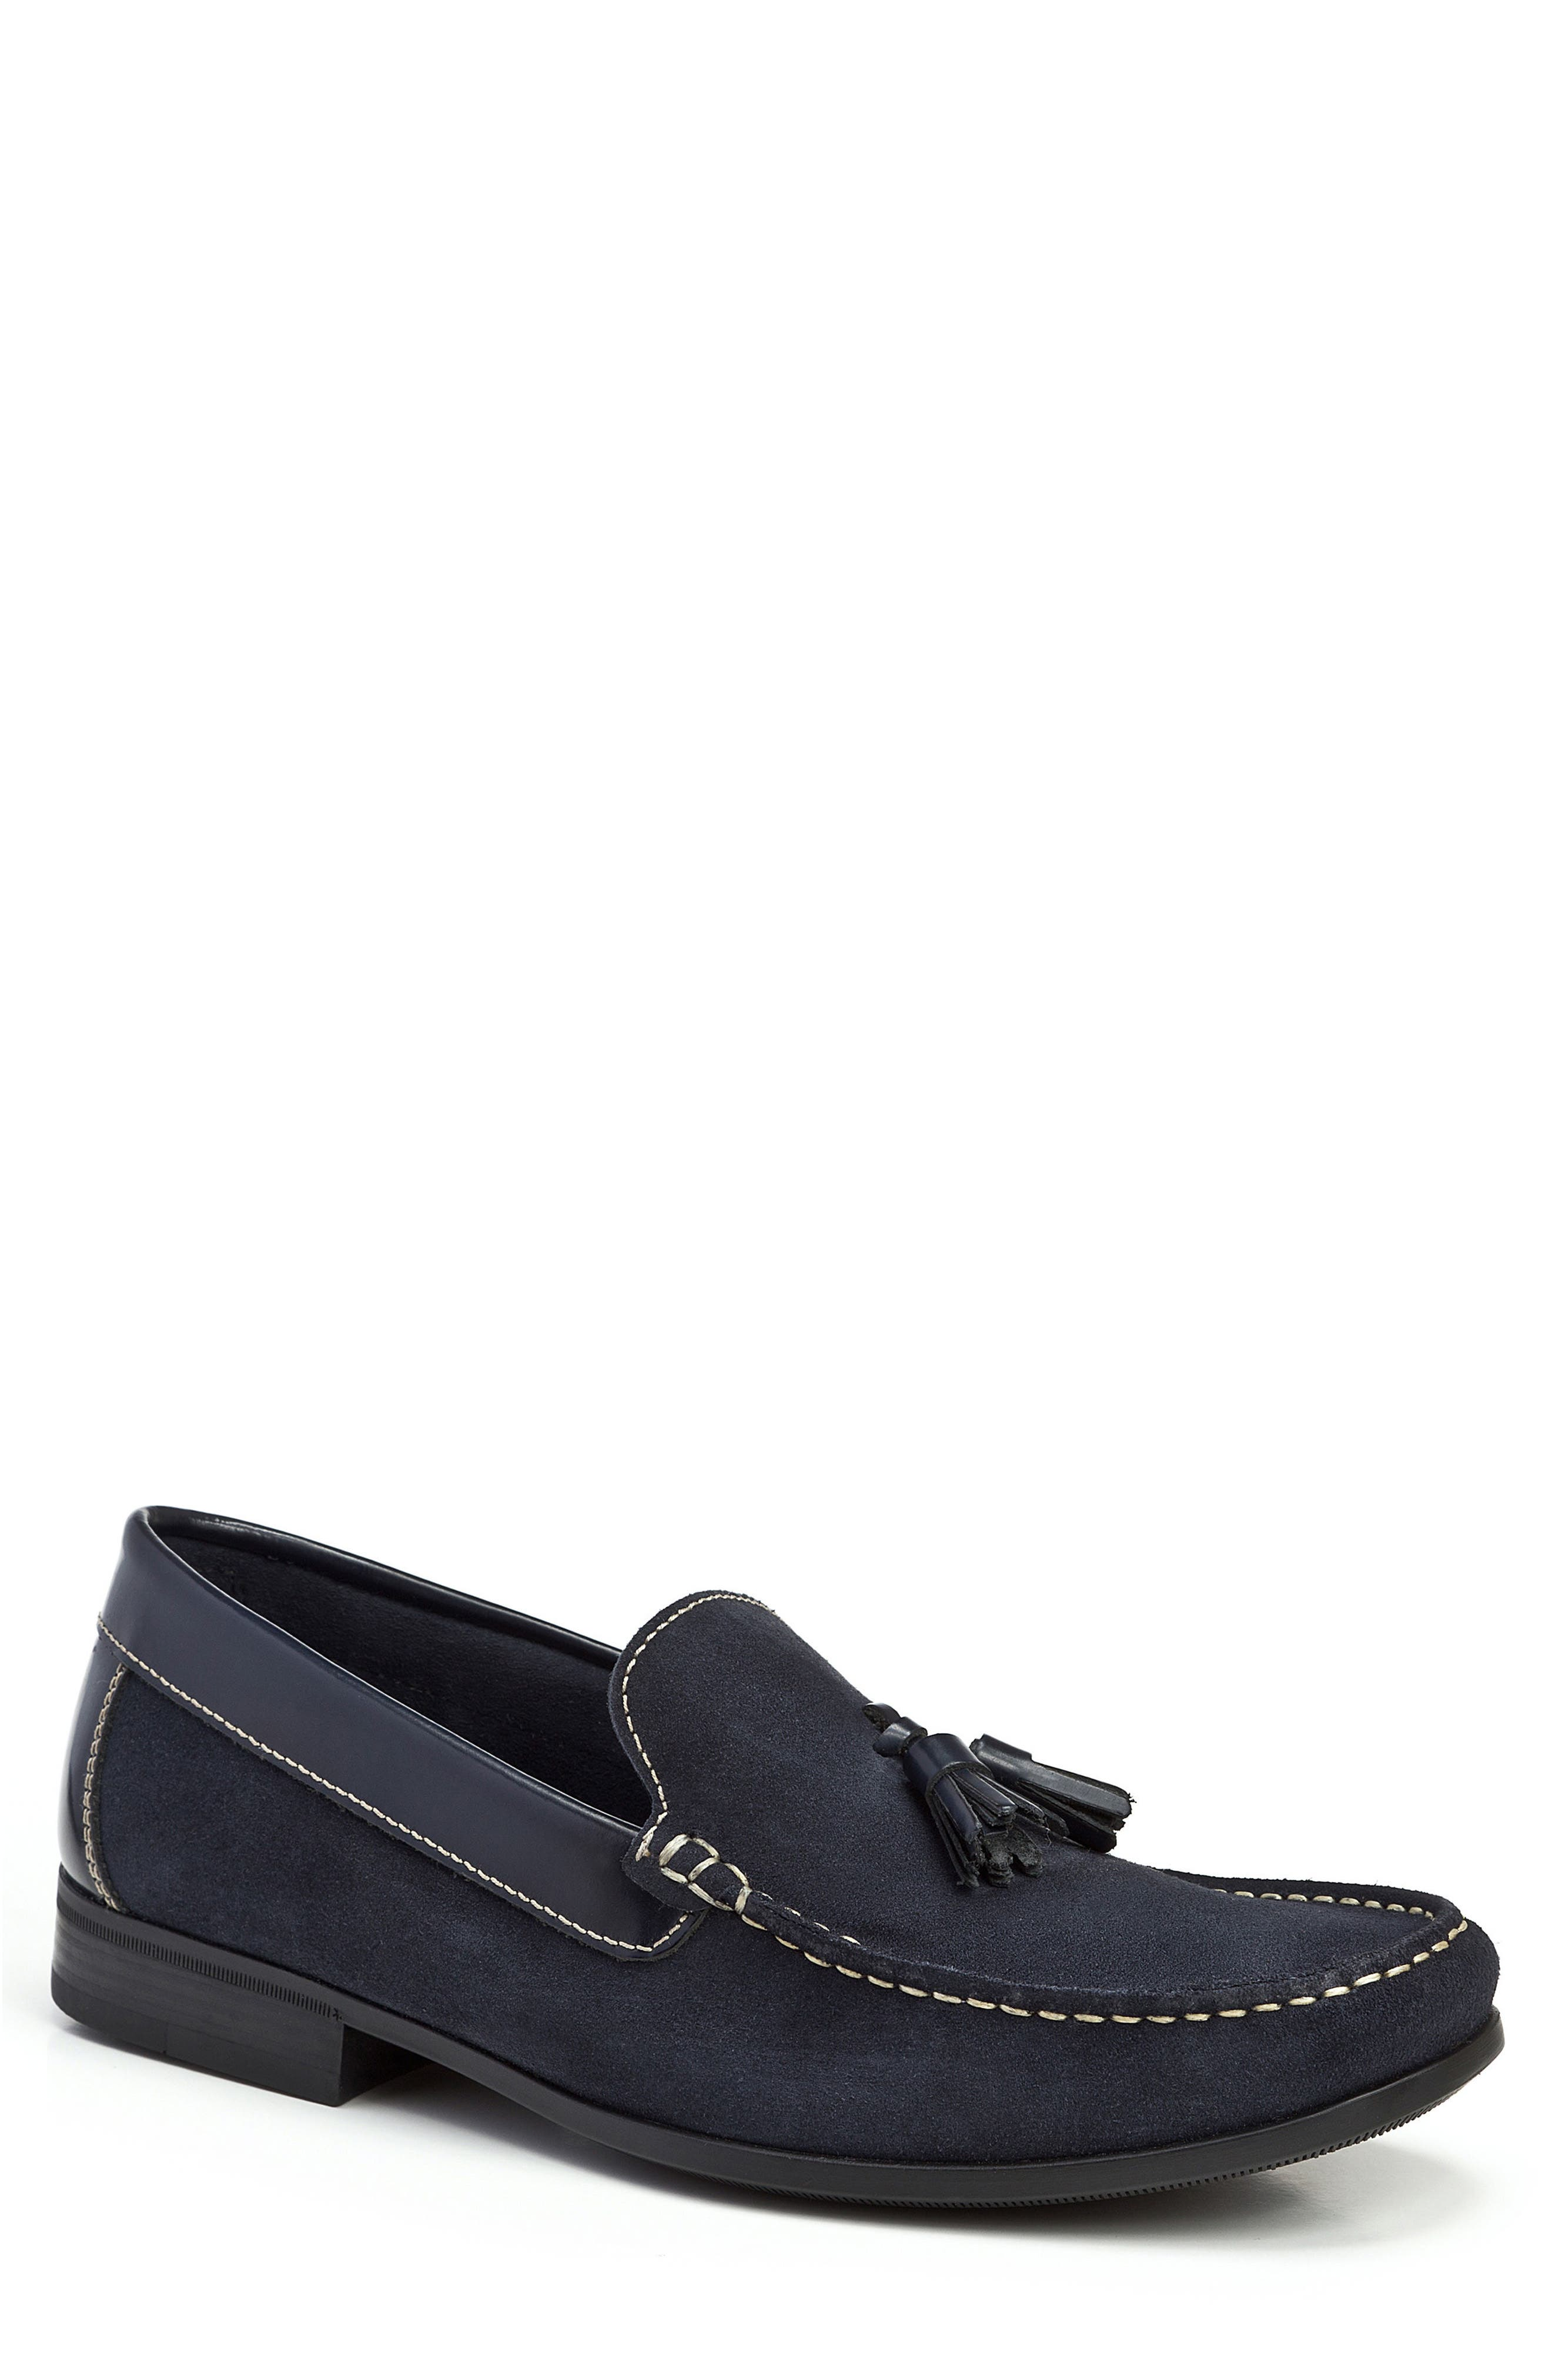 Sandro Moscoloni Hojas Tassel Loafer - Blue